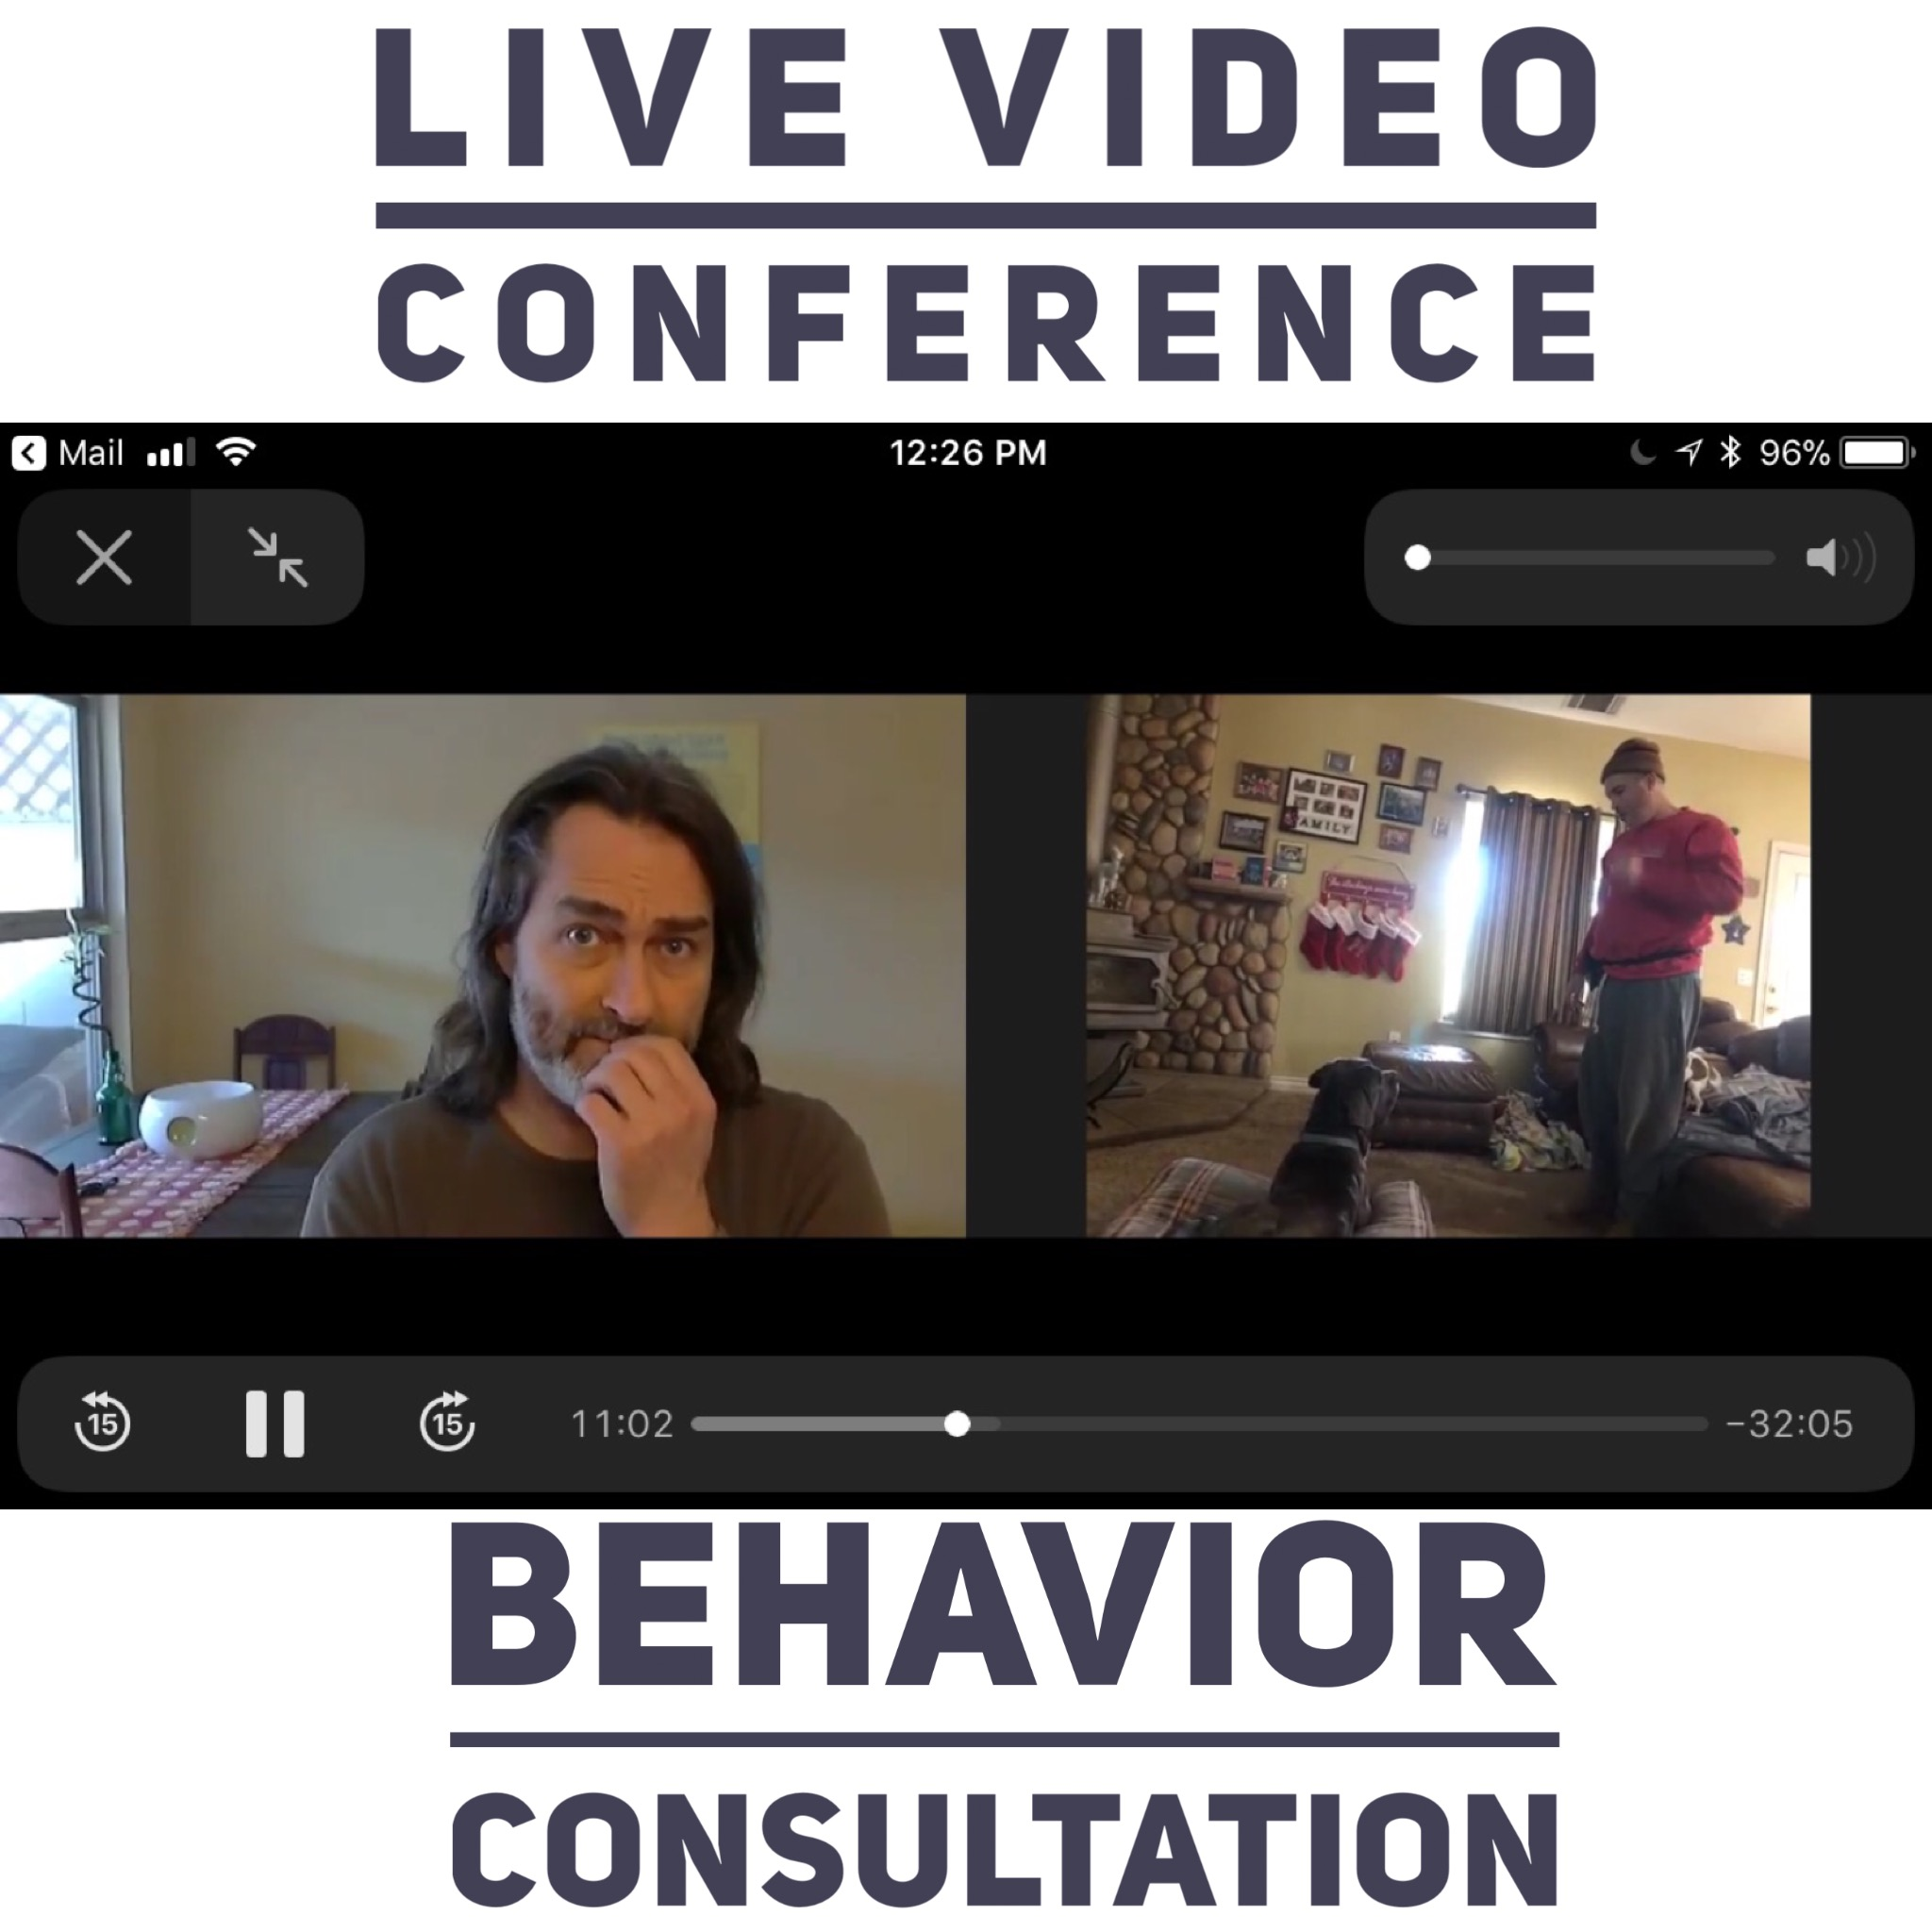 Virtual consultation with a client in California who's dog shows autistic symptom.